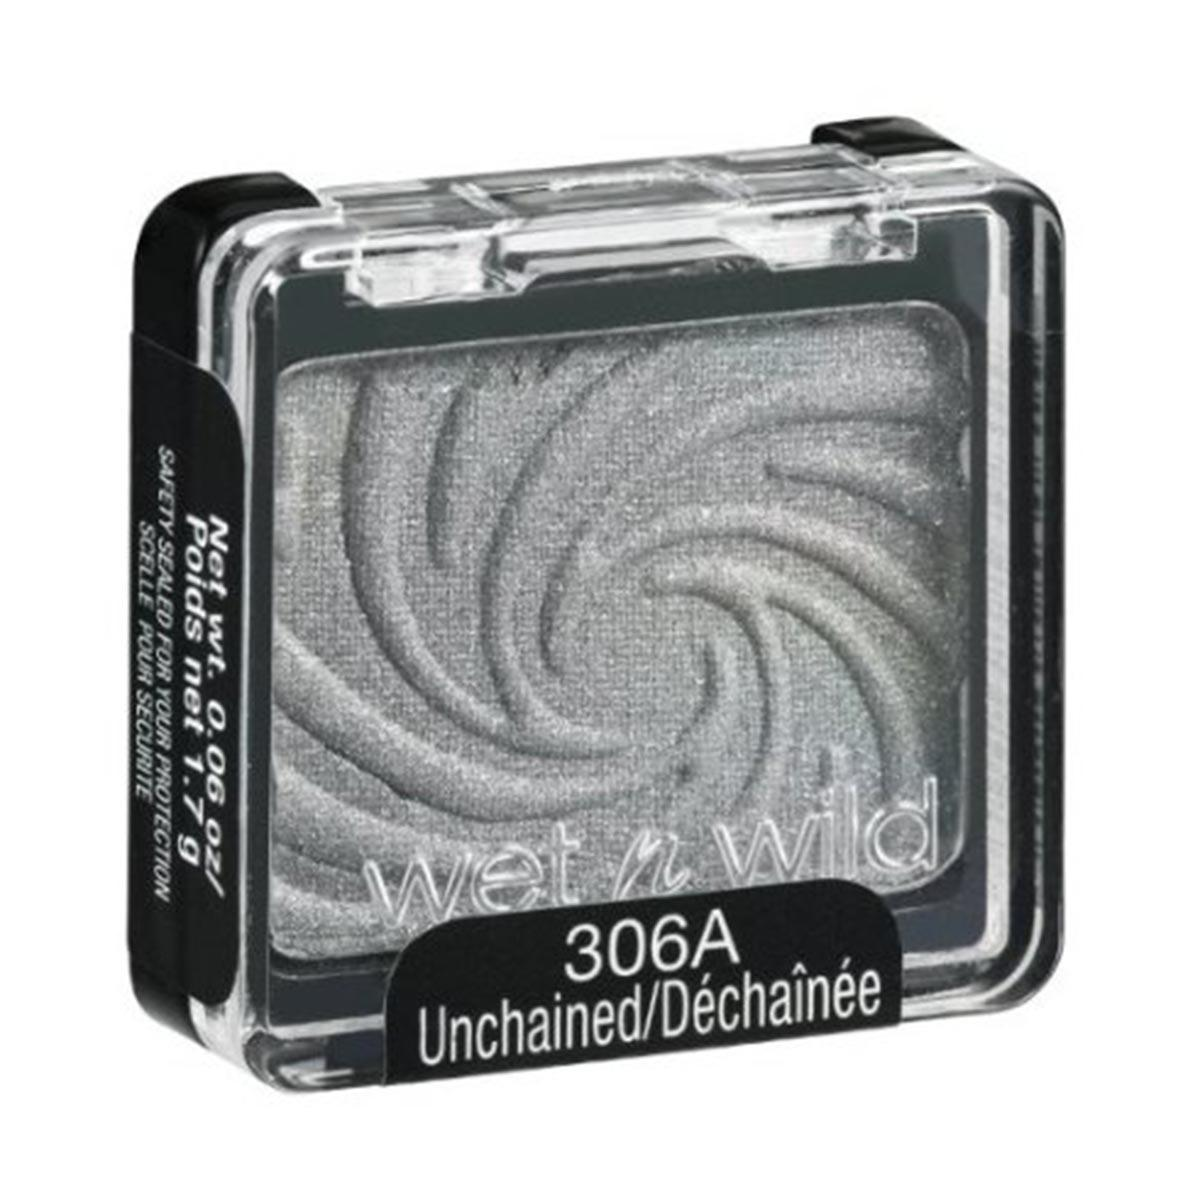 Wet n wild Eyeshadow 306A Unchained